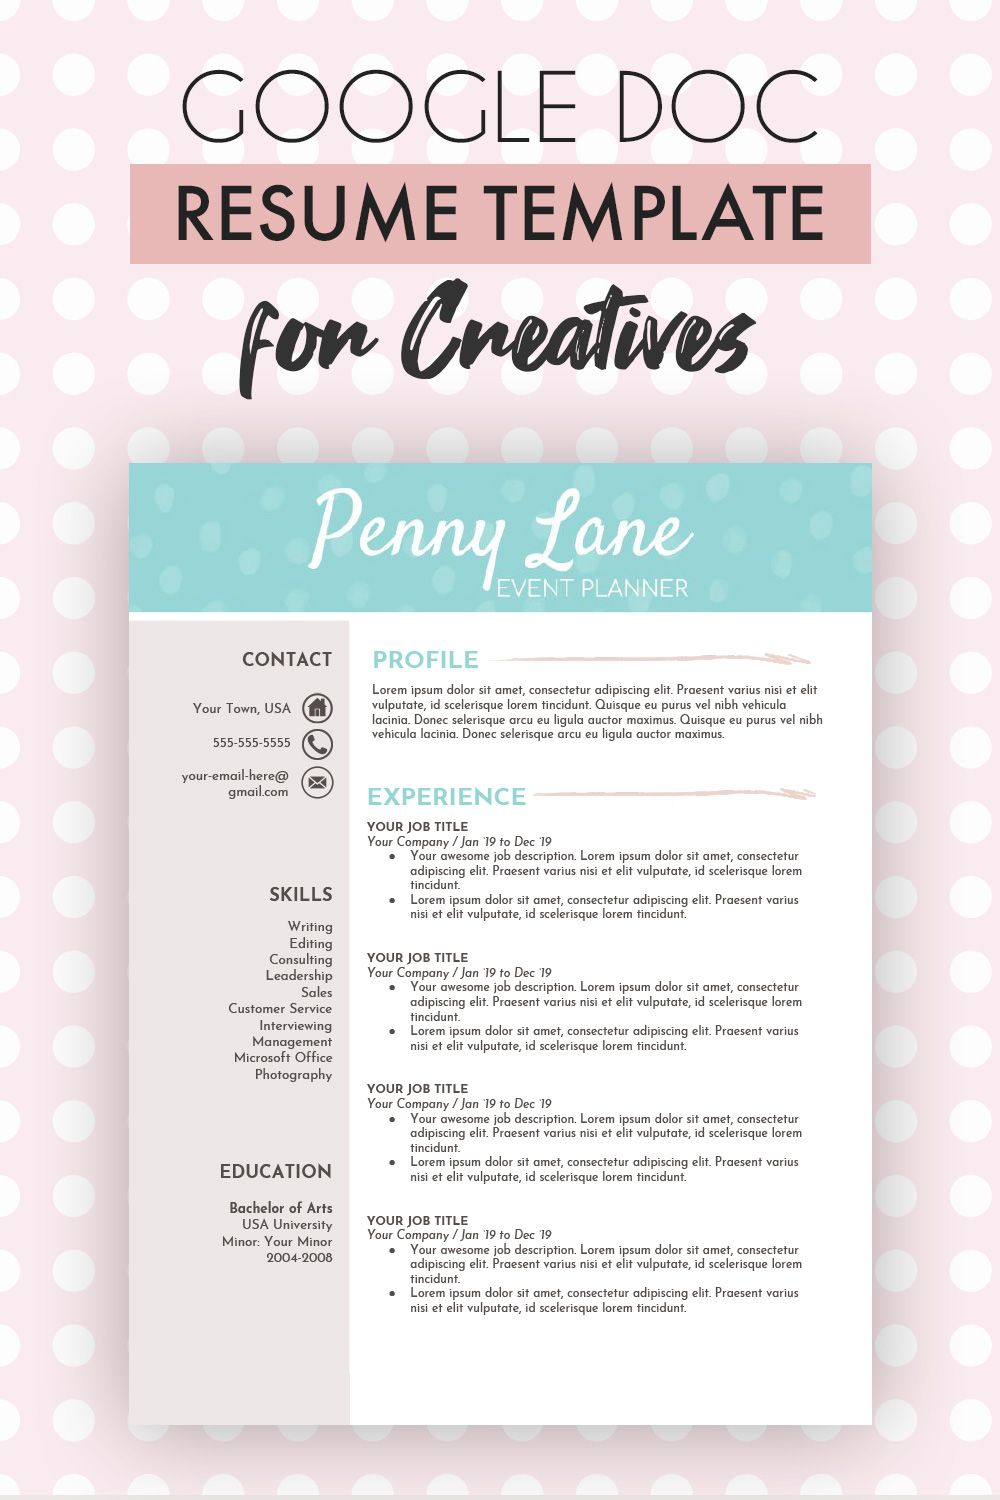 Creative Google Docs Resume Template One Page Resume Plus Cover Letter References Google Doc Resume Template Penny Resume Template One Page Resume Template One Page Resume